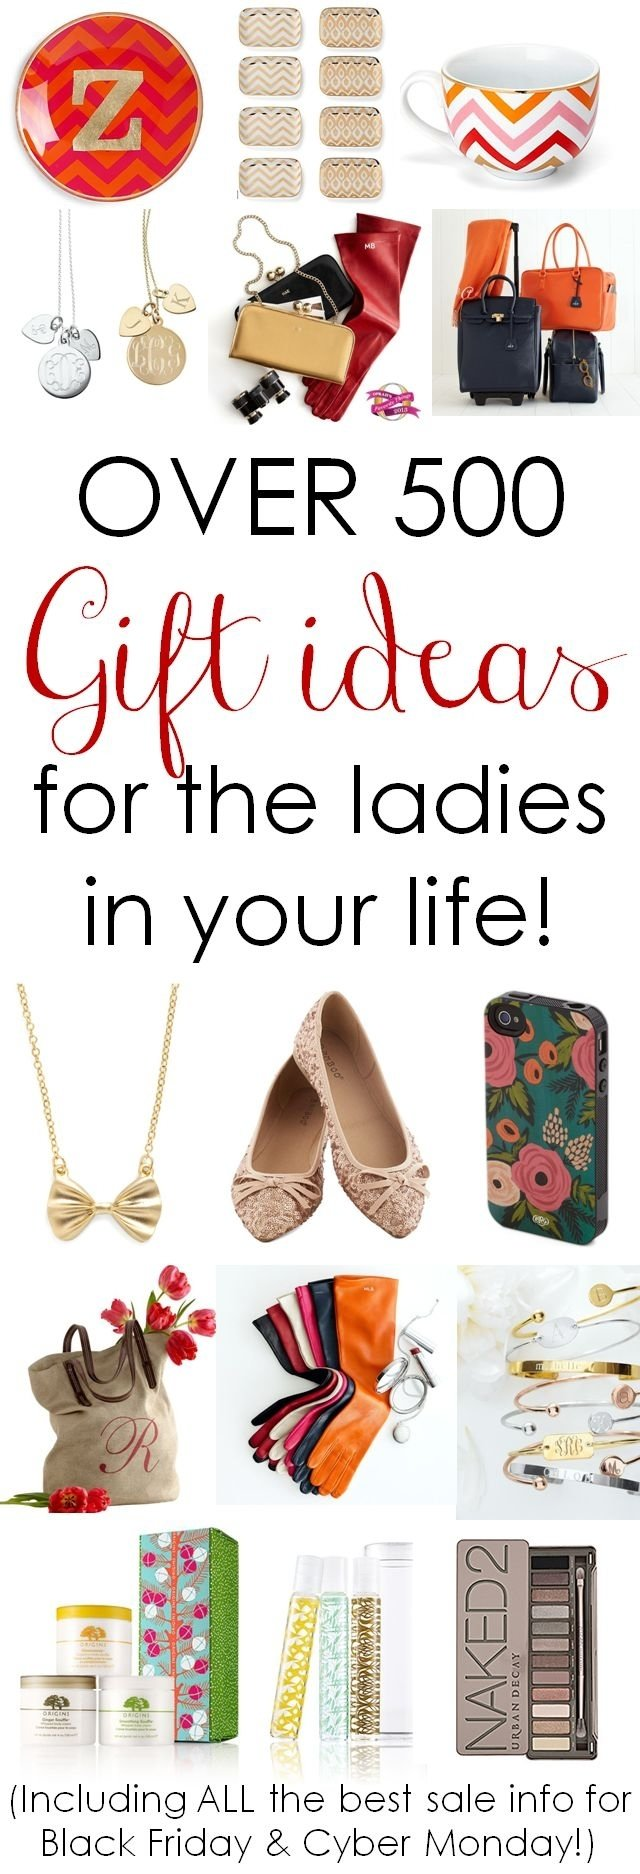 10 Attractive Best Gift Ideas For Women 2013 33 best deals discounts giveaways freebies images on pinterest 4 2020